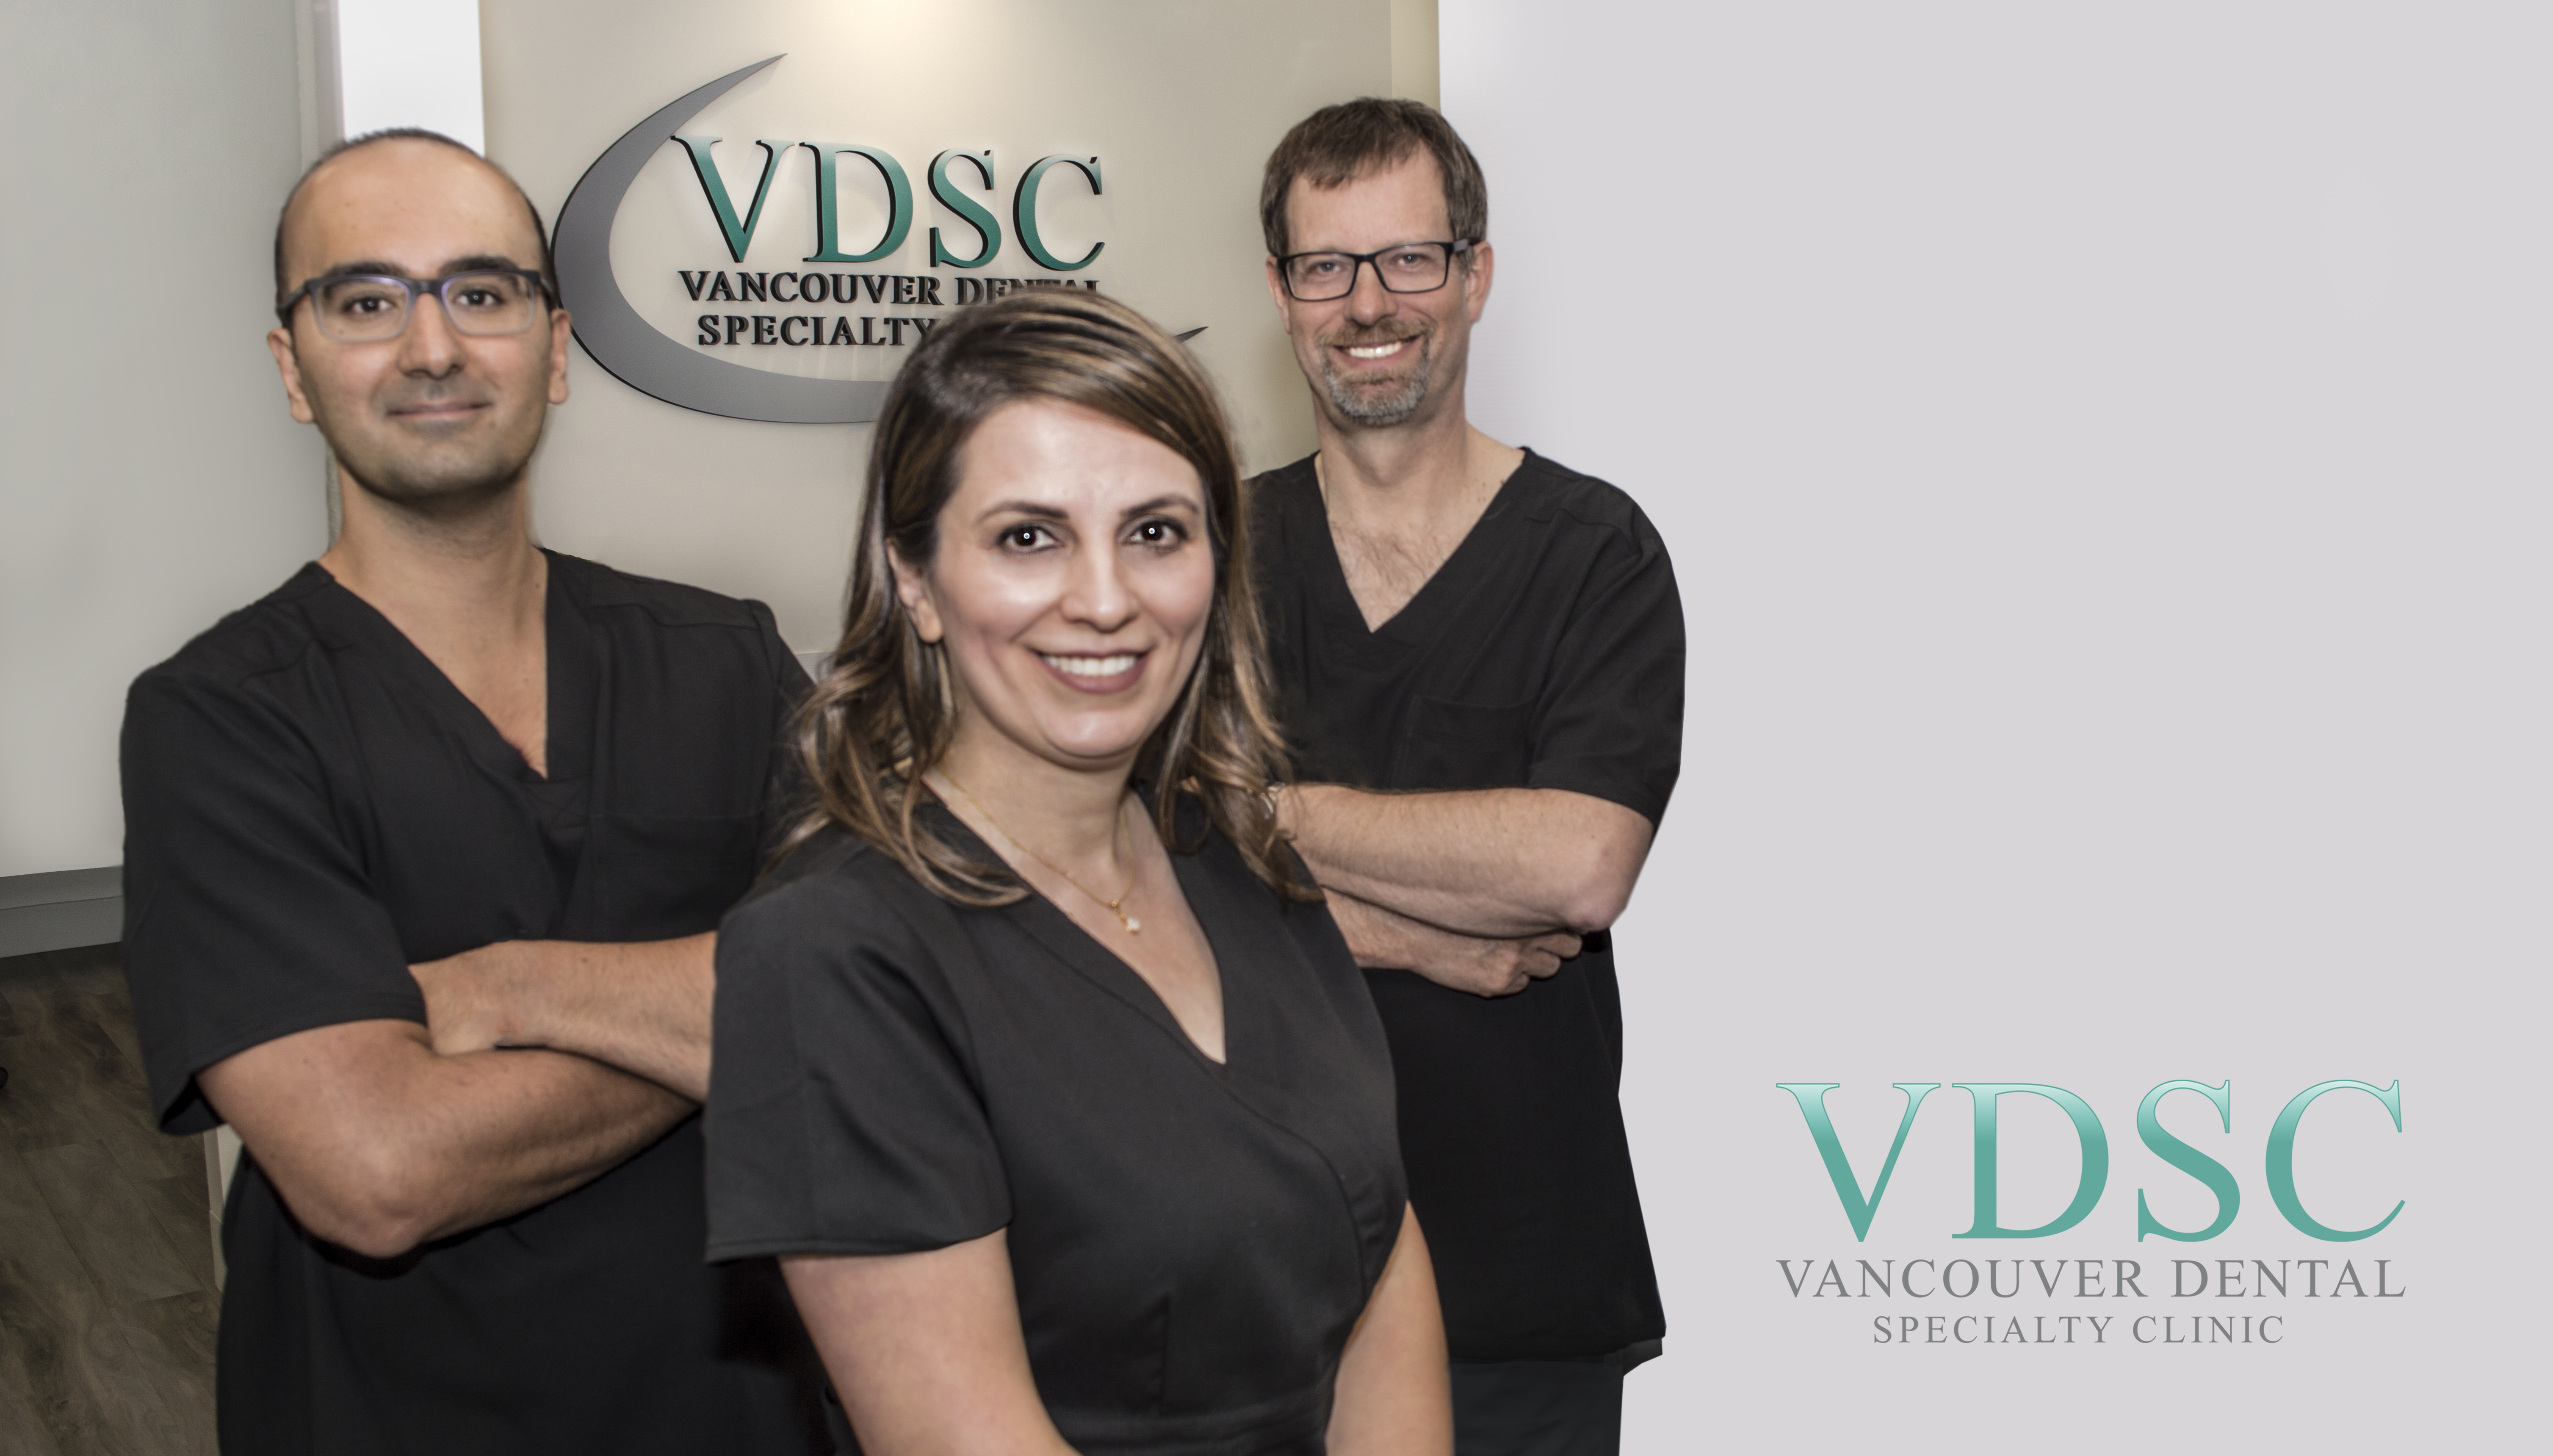 VANCOUVER DENTAL SPECILALTY CLINIC